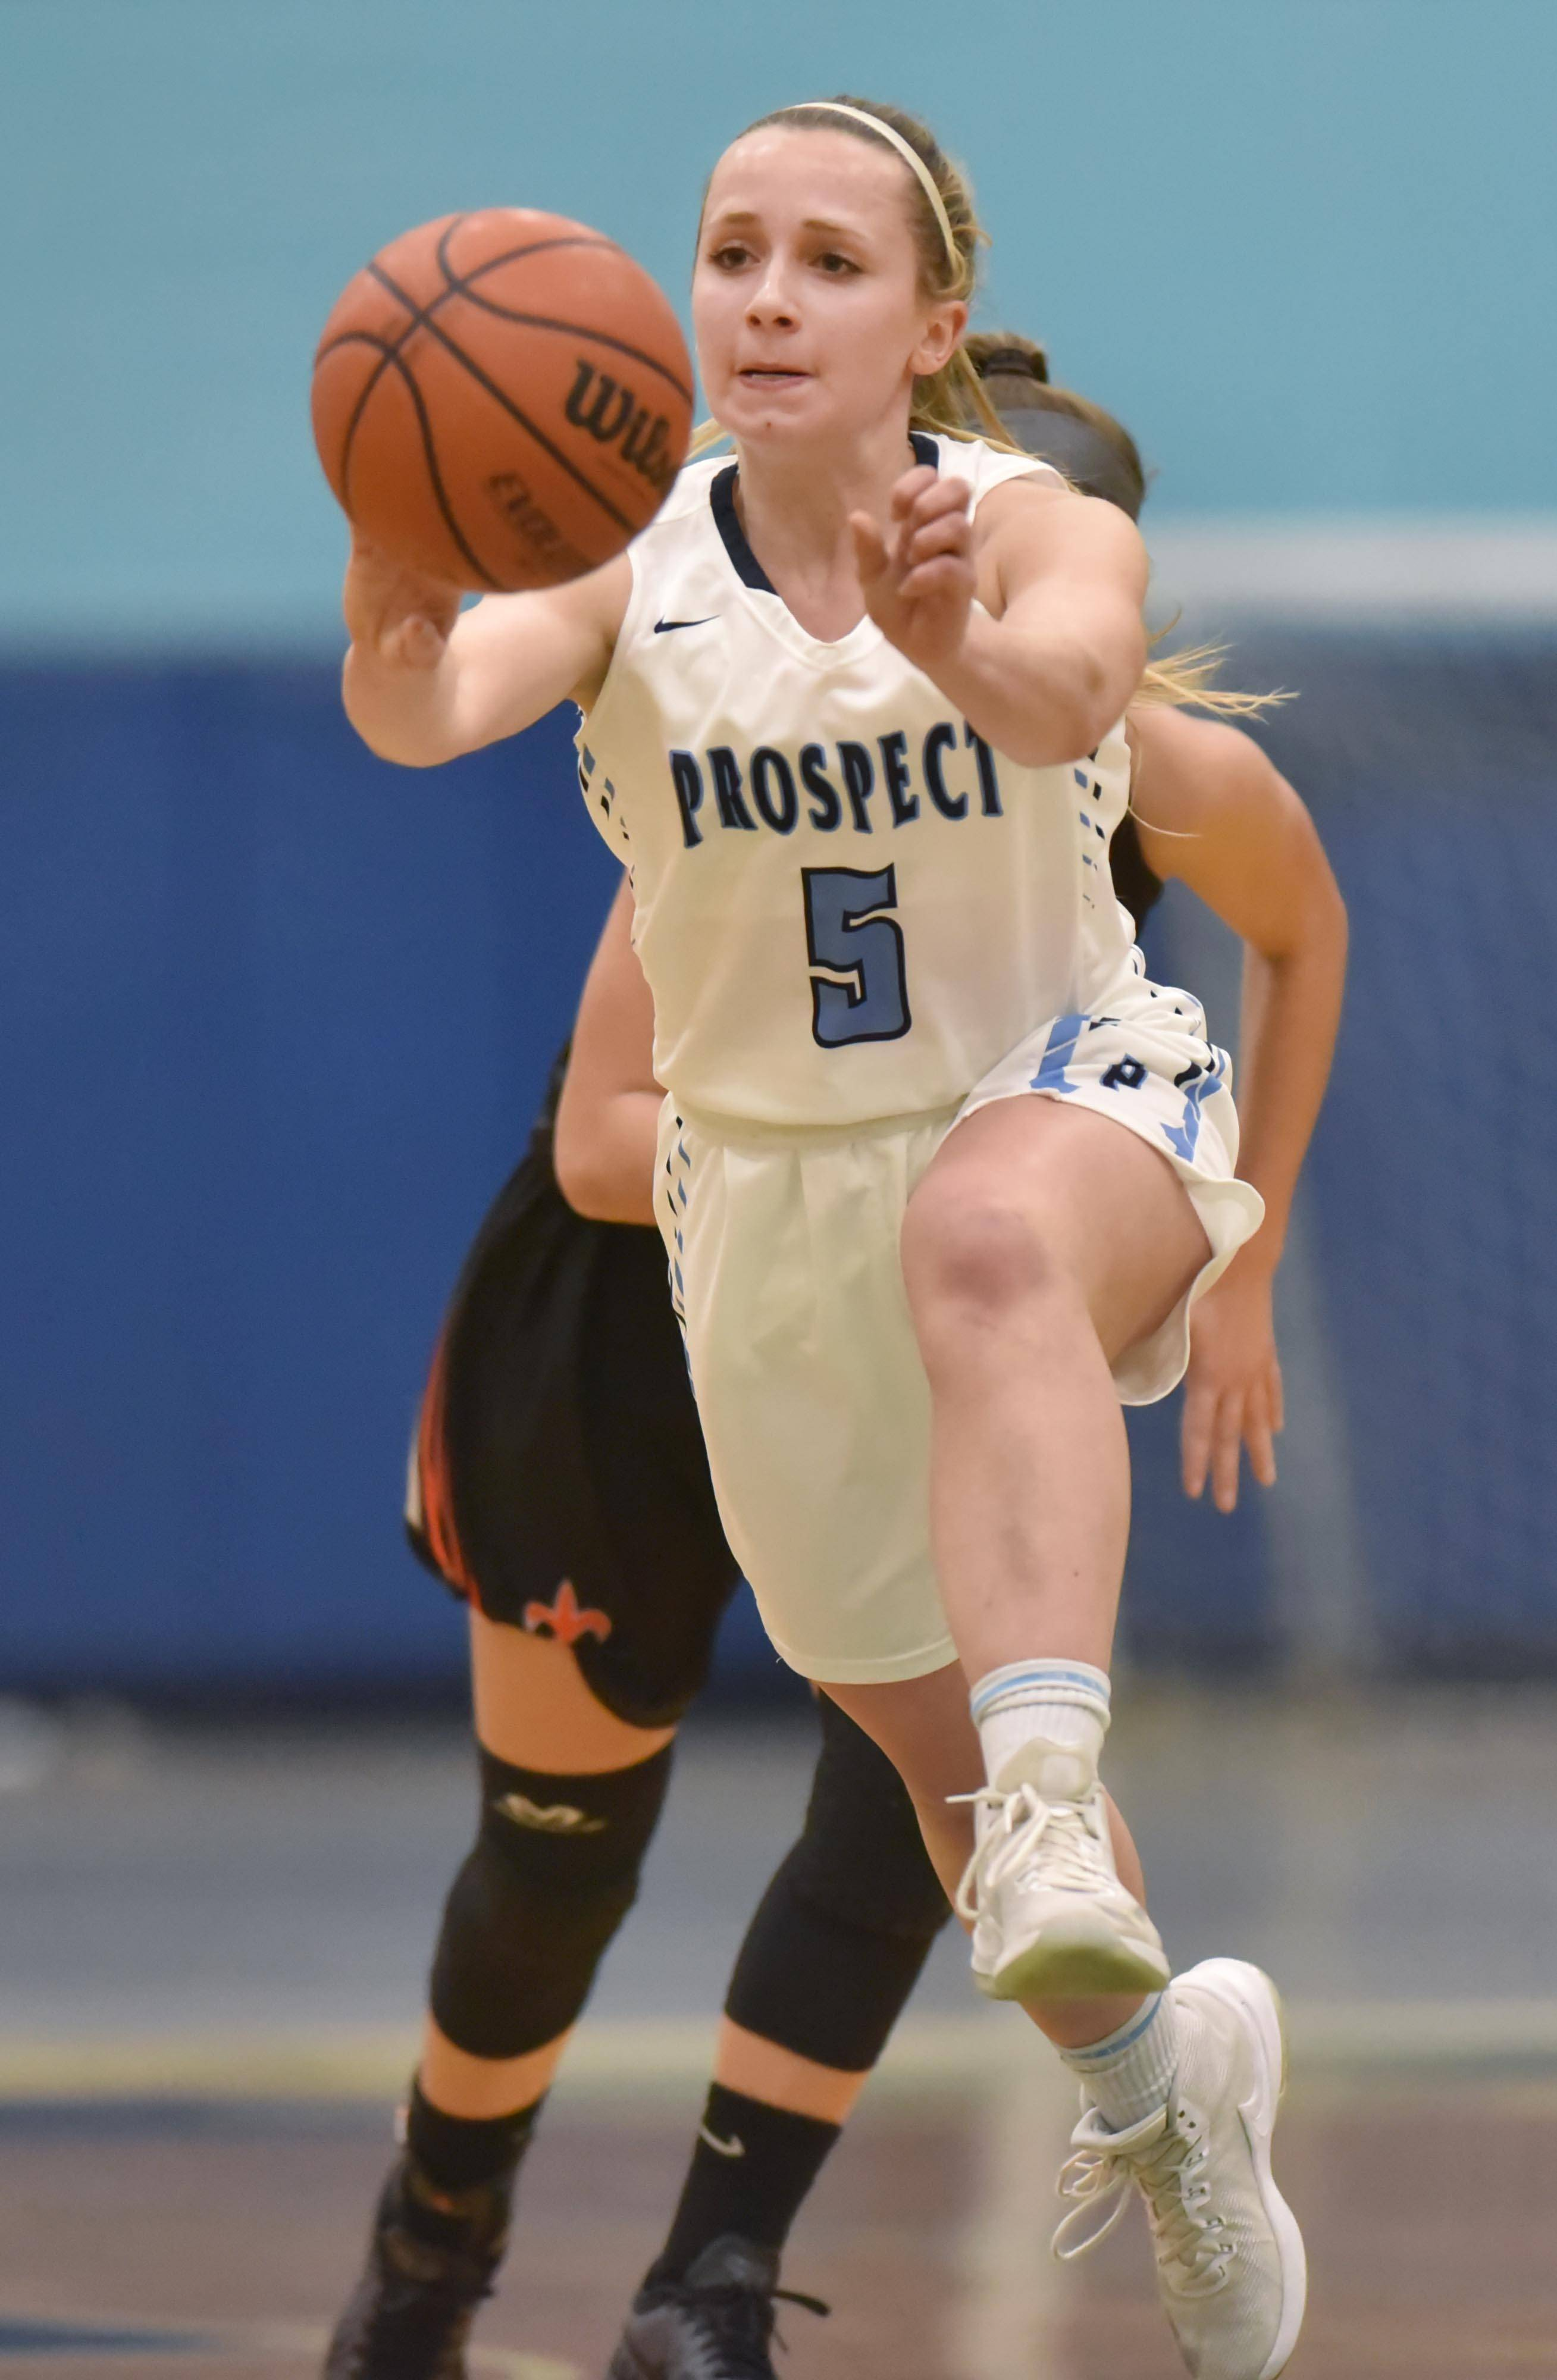 Prospect's Helen Siavelis heaves the ball to a teammate against St. Charles East Wednesday in a girls basketball game in Mount Prospect.